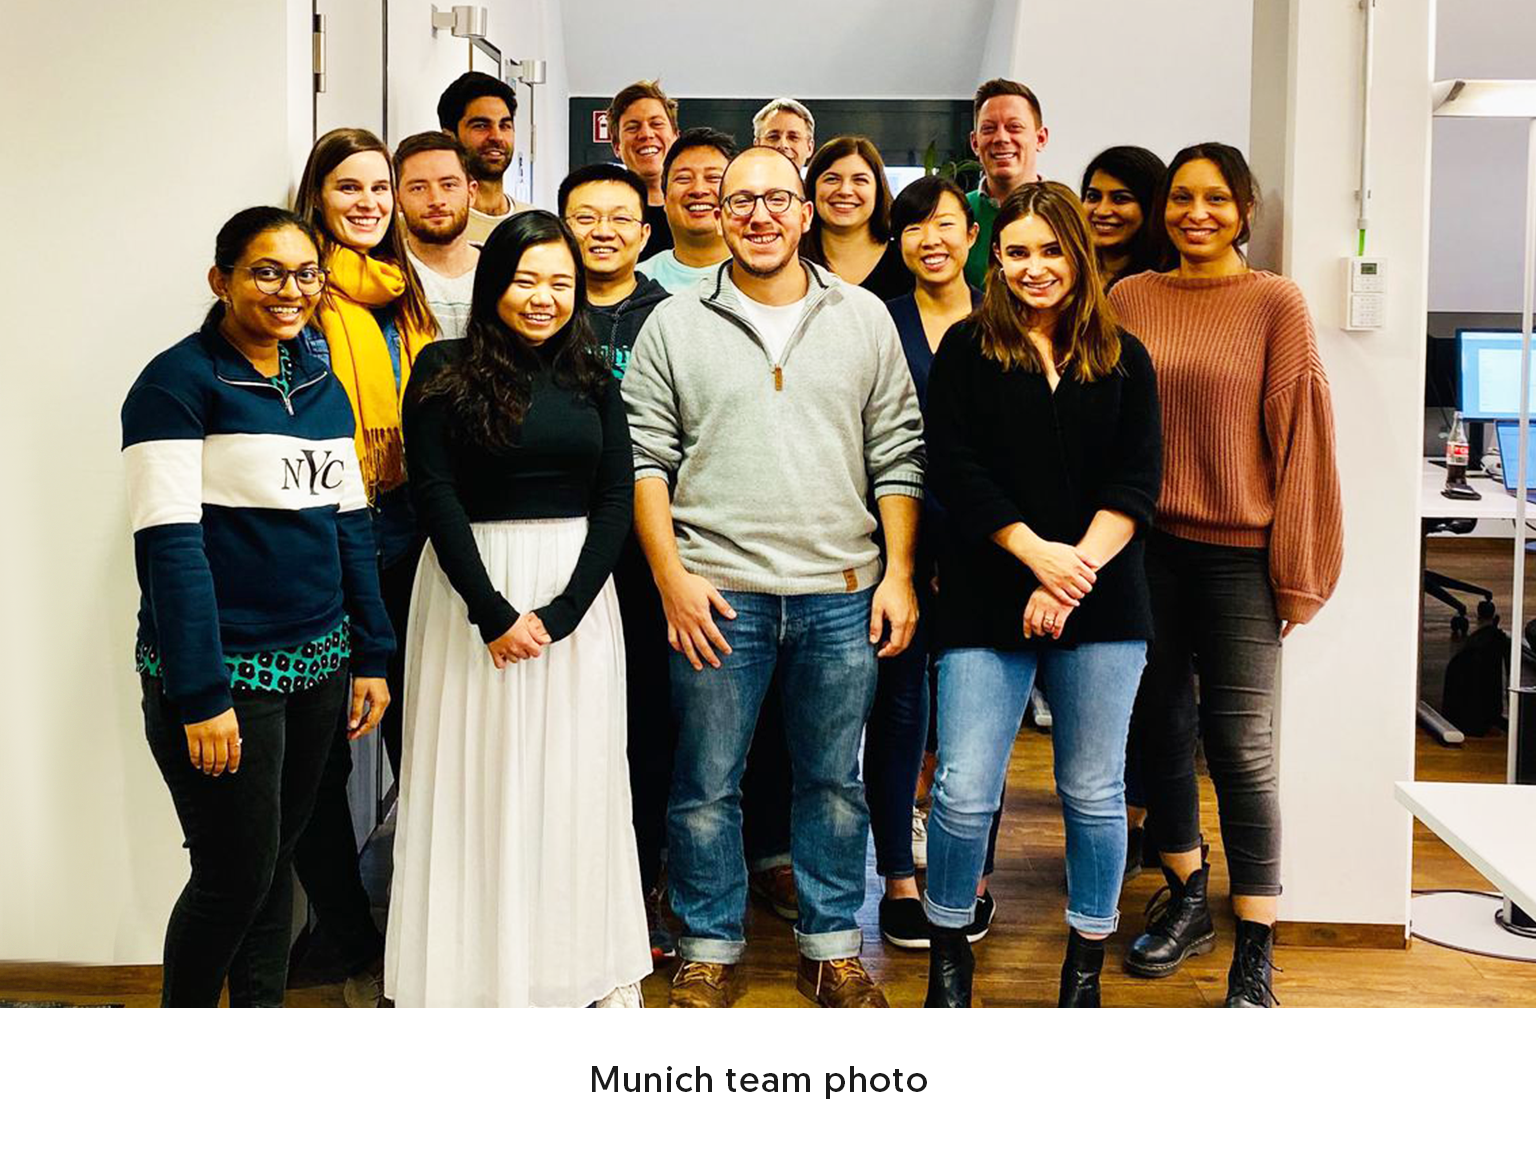 Munich team photo